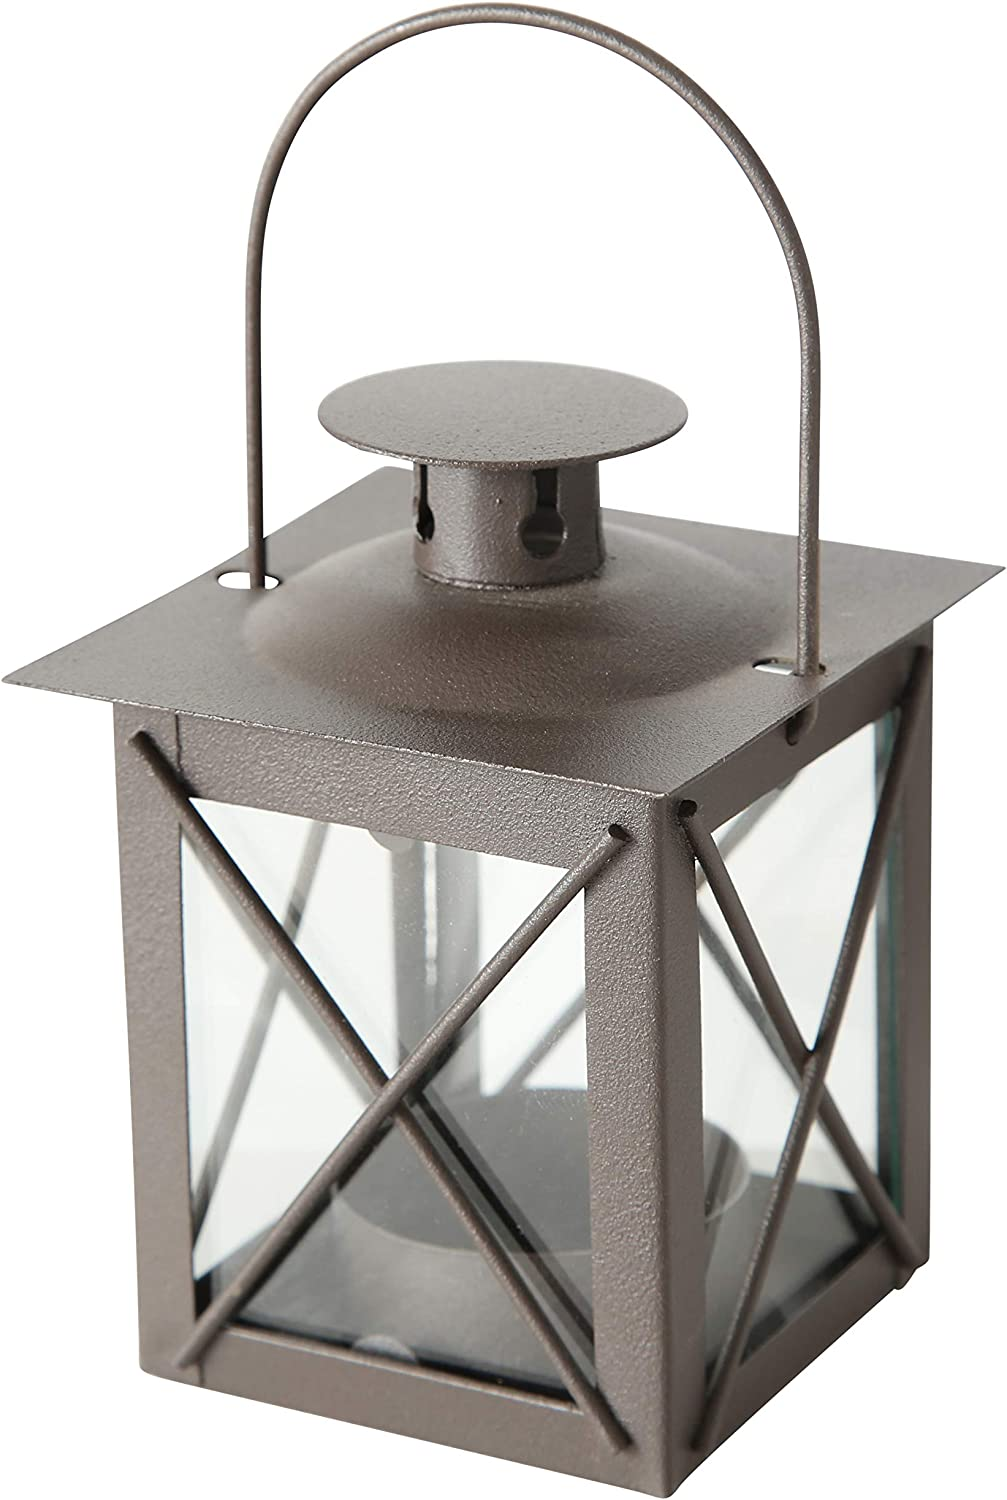 WHW Whole House Worlds Urban Chic Industrial Metal Cross Post Hurricane Lanterns for LED or Wax Tealights, 4 1/2 Inches Tall, Rustic Gray Gunmetal Iron and Crystal Clear Glass, Vintage Style